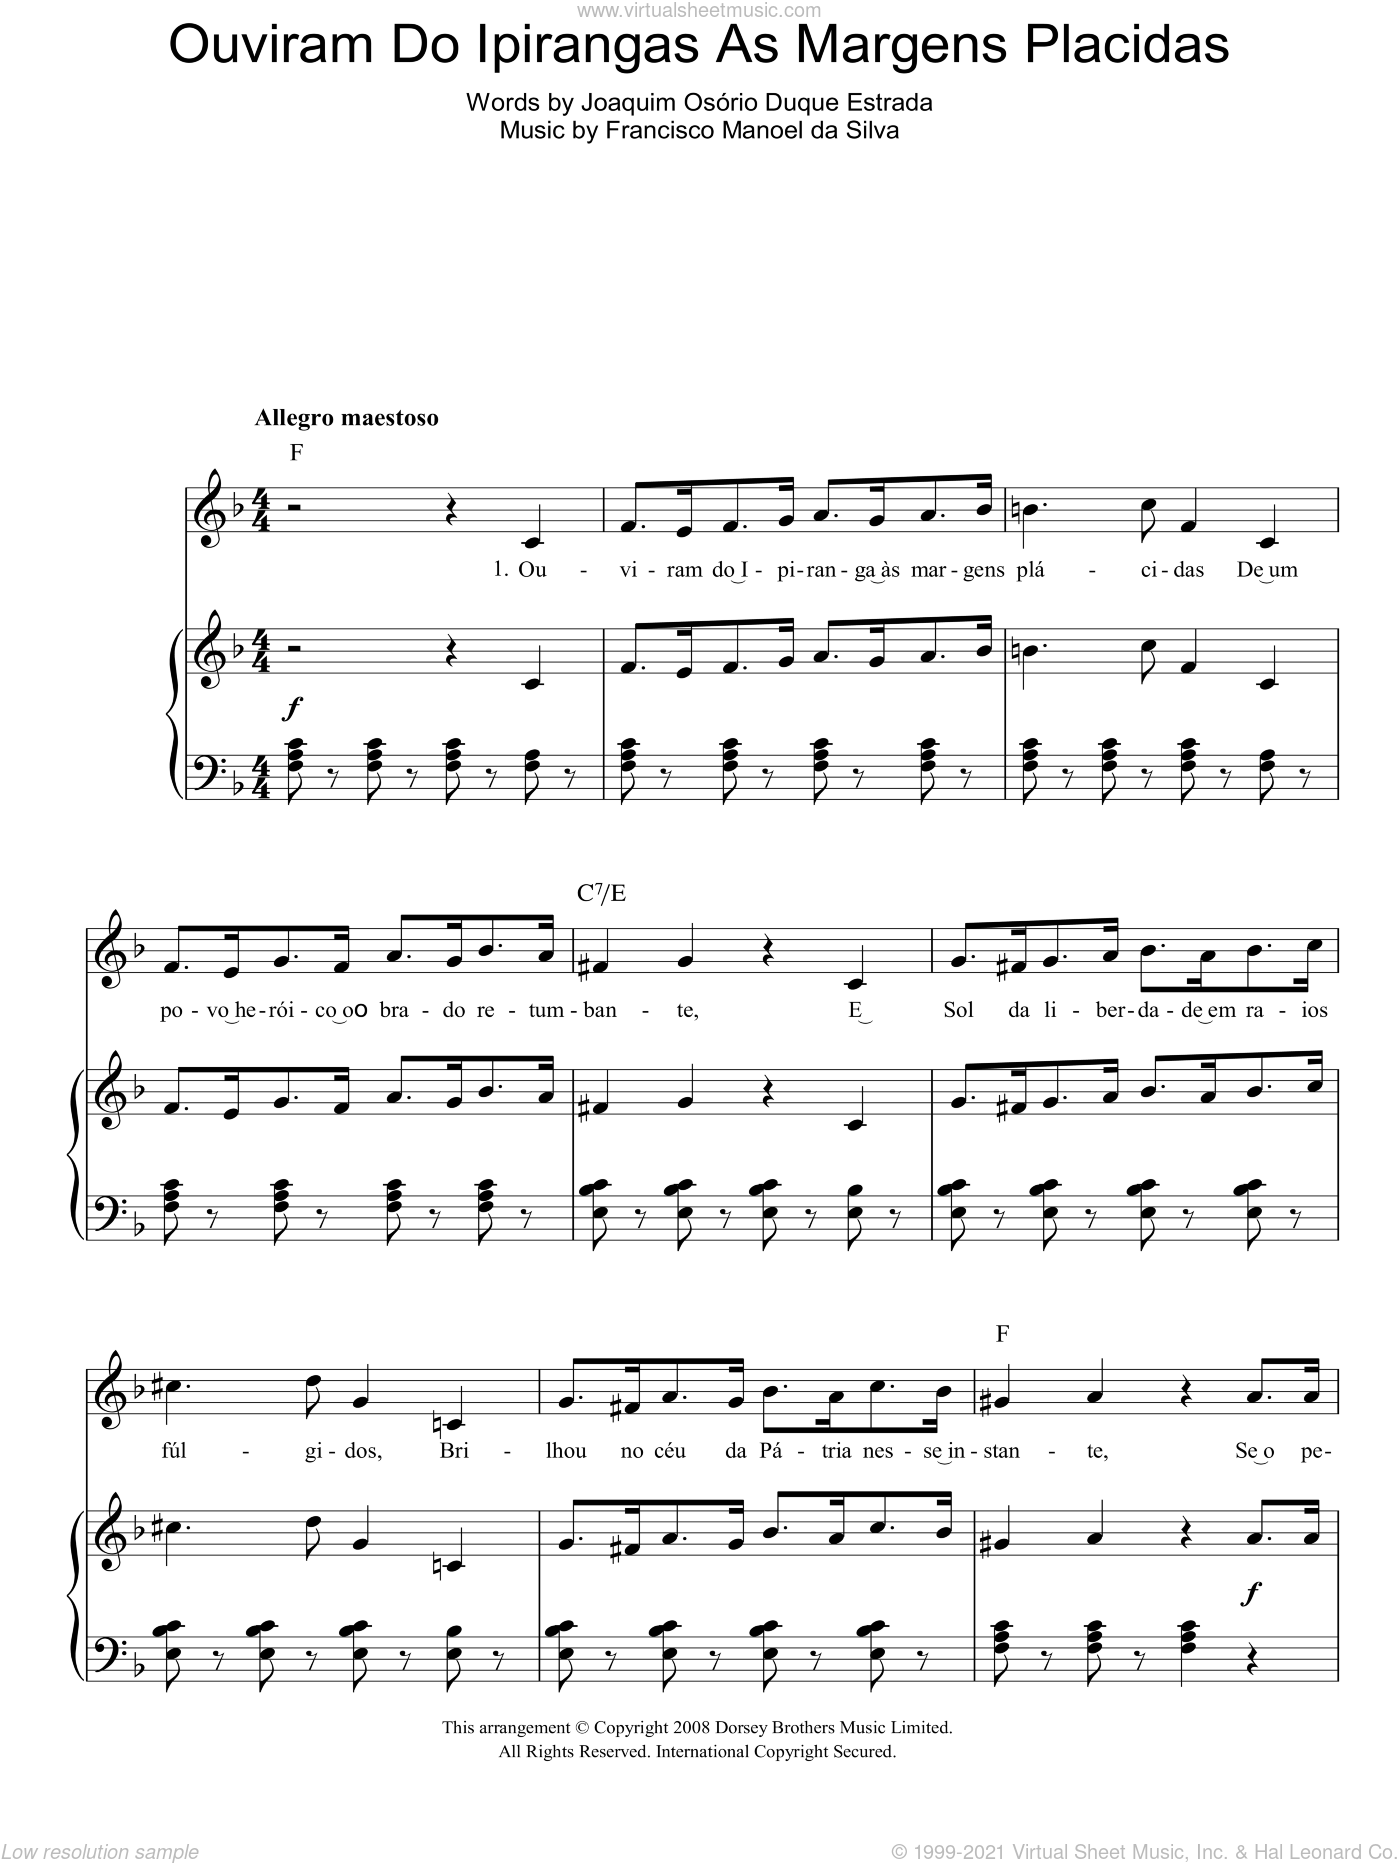 Ouviram Do Ipirangas As Margens Placidas (Brazilian National Anthem) sheet music for voice, piano or guitar by Joaquim Osorio Duque Estrada. Score Image Preview.